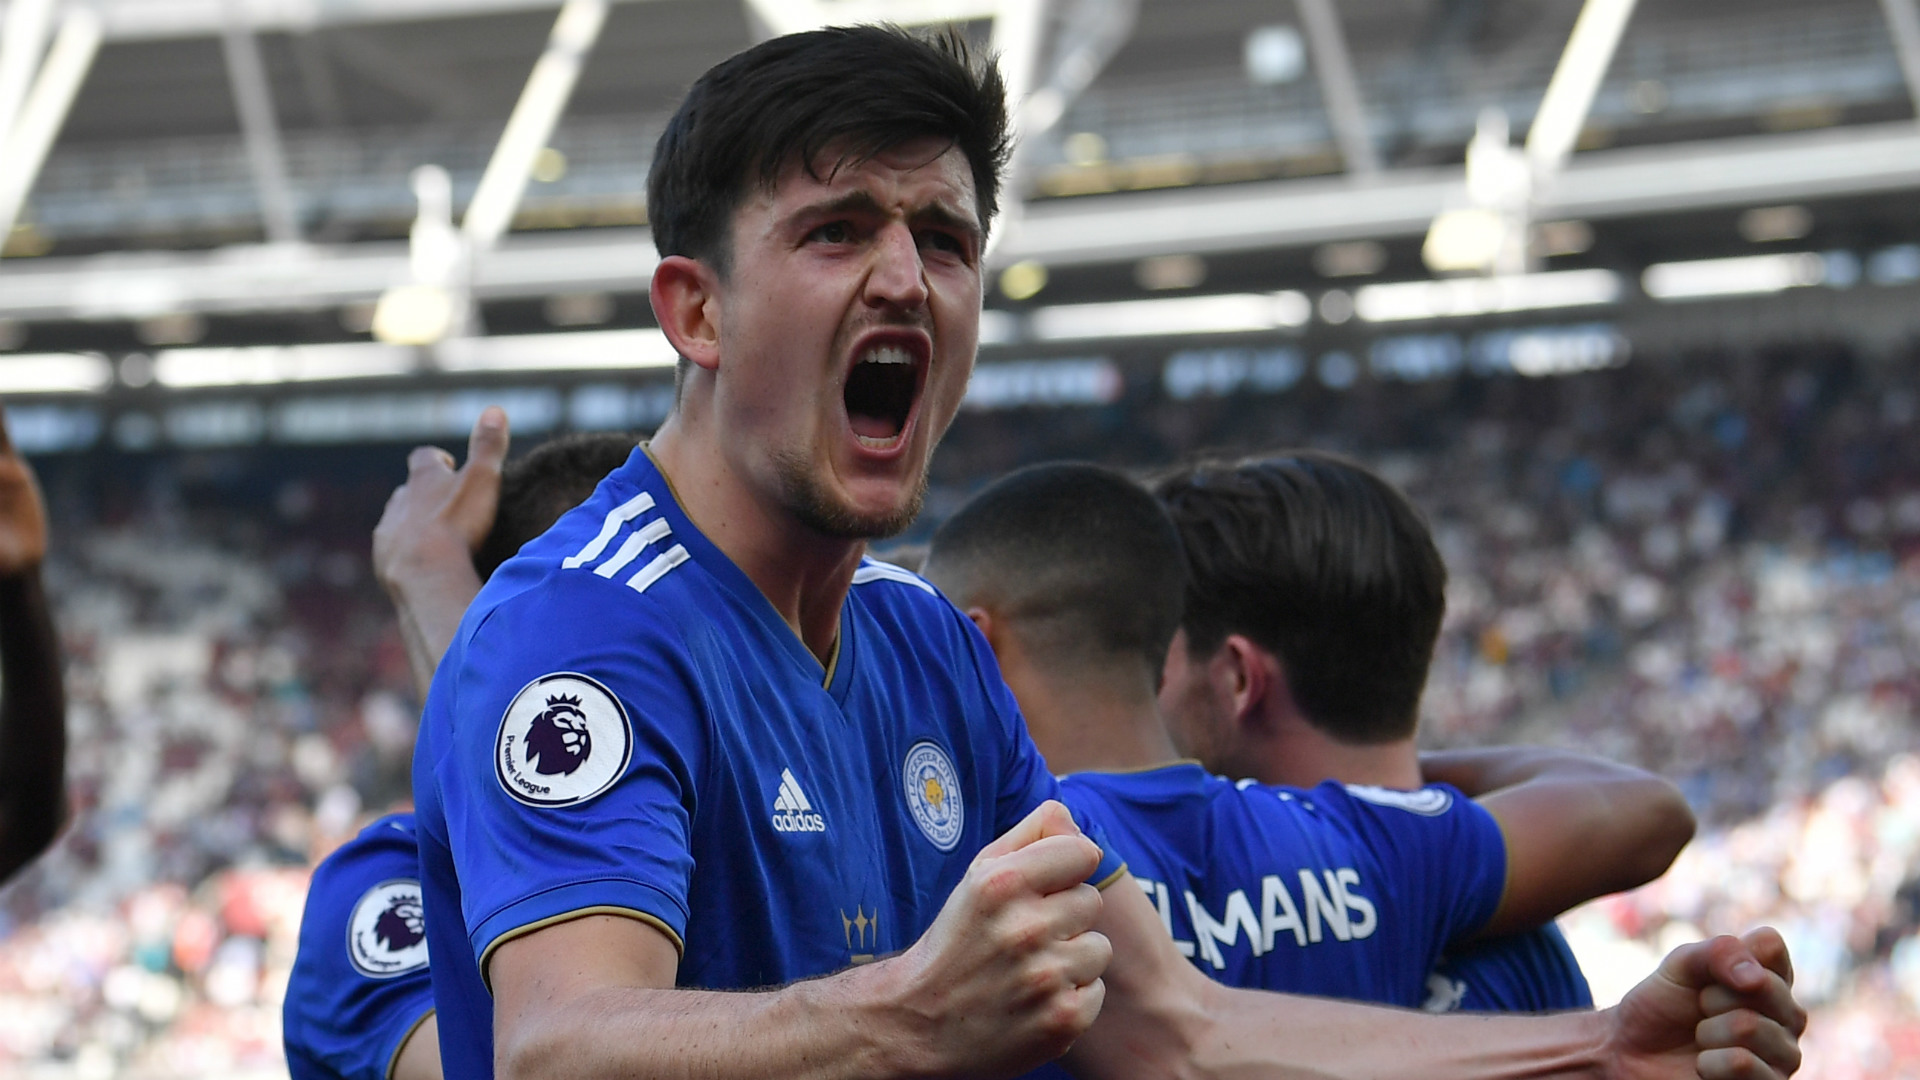 'They should be chasing De Ligt' - Ex-Man Utd man Spector surprised at Maguire move